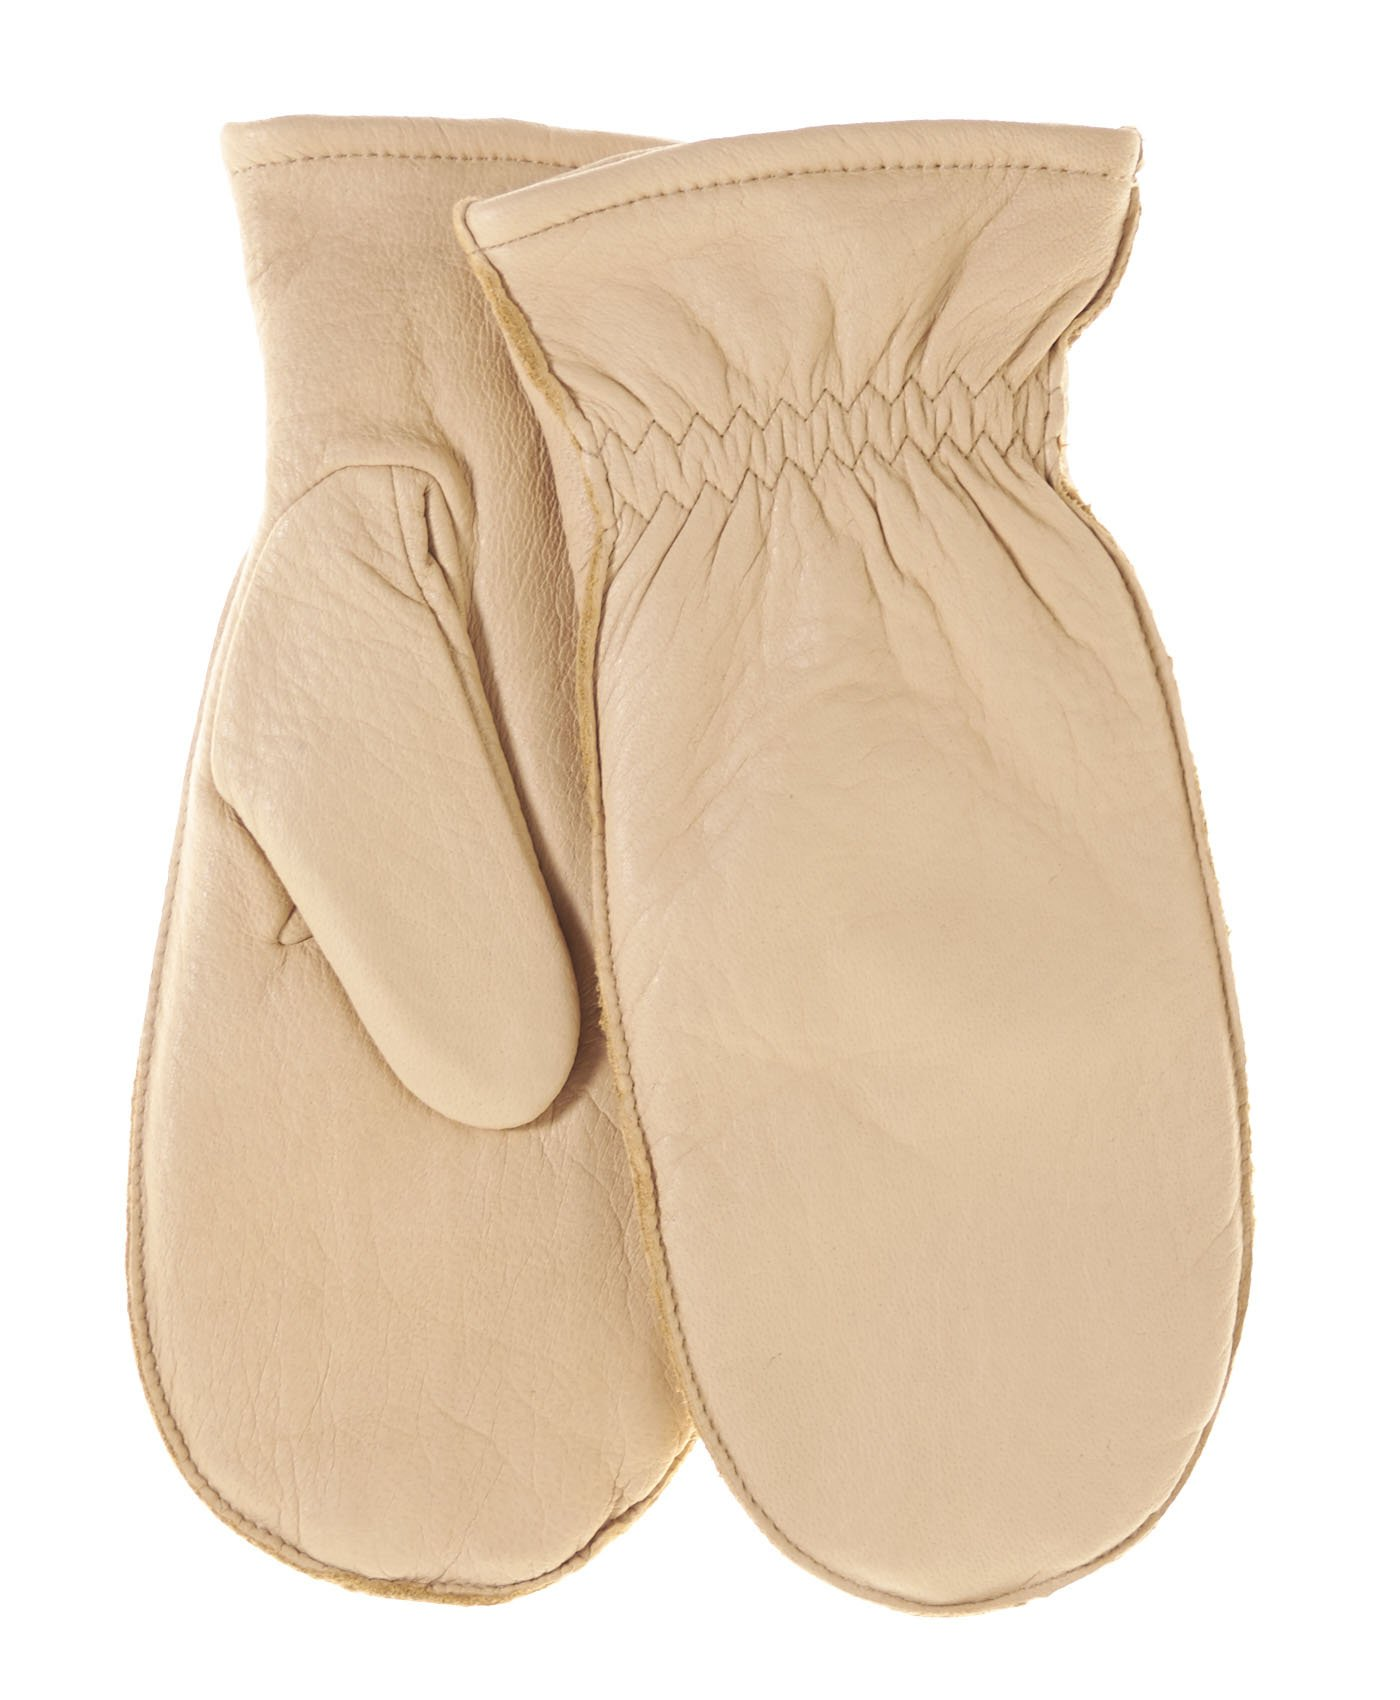 Pratt and Hart Women's Winter Deerskin Leather Mittens with Finger Liners Size M Color Tan